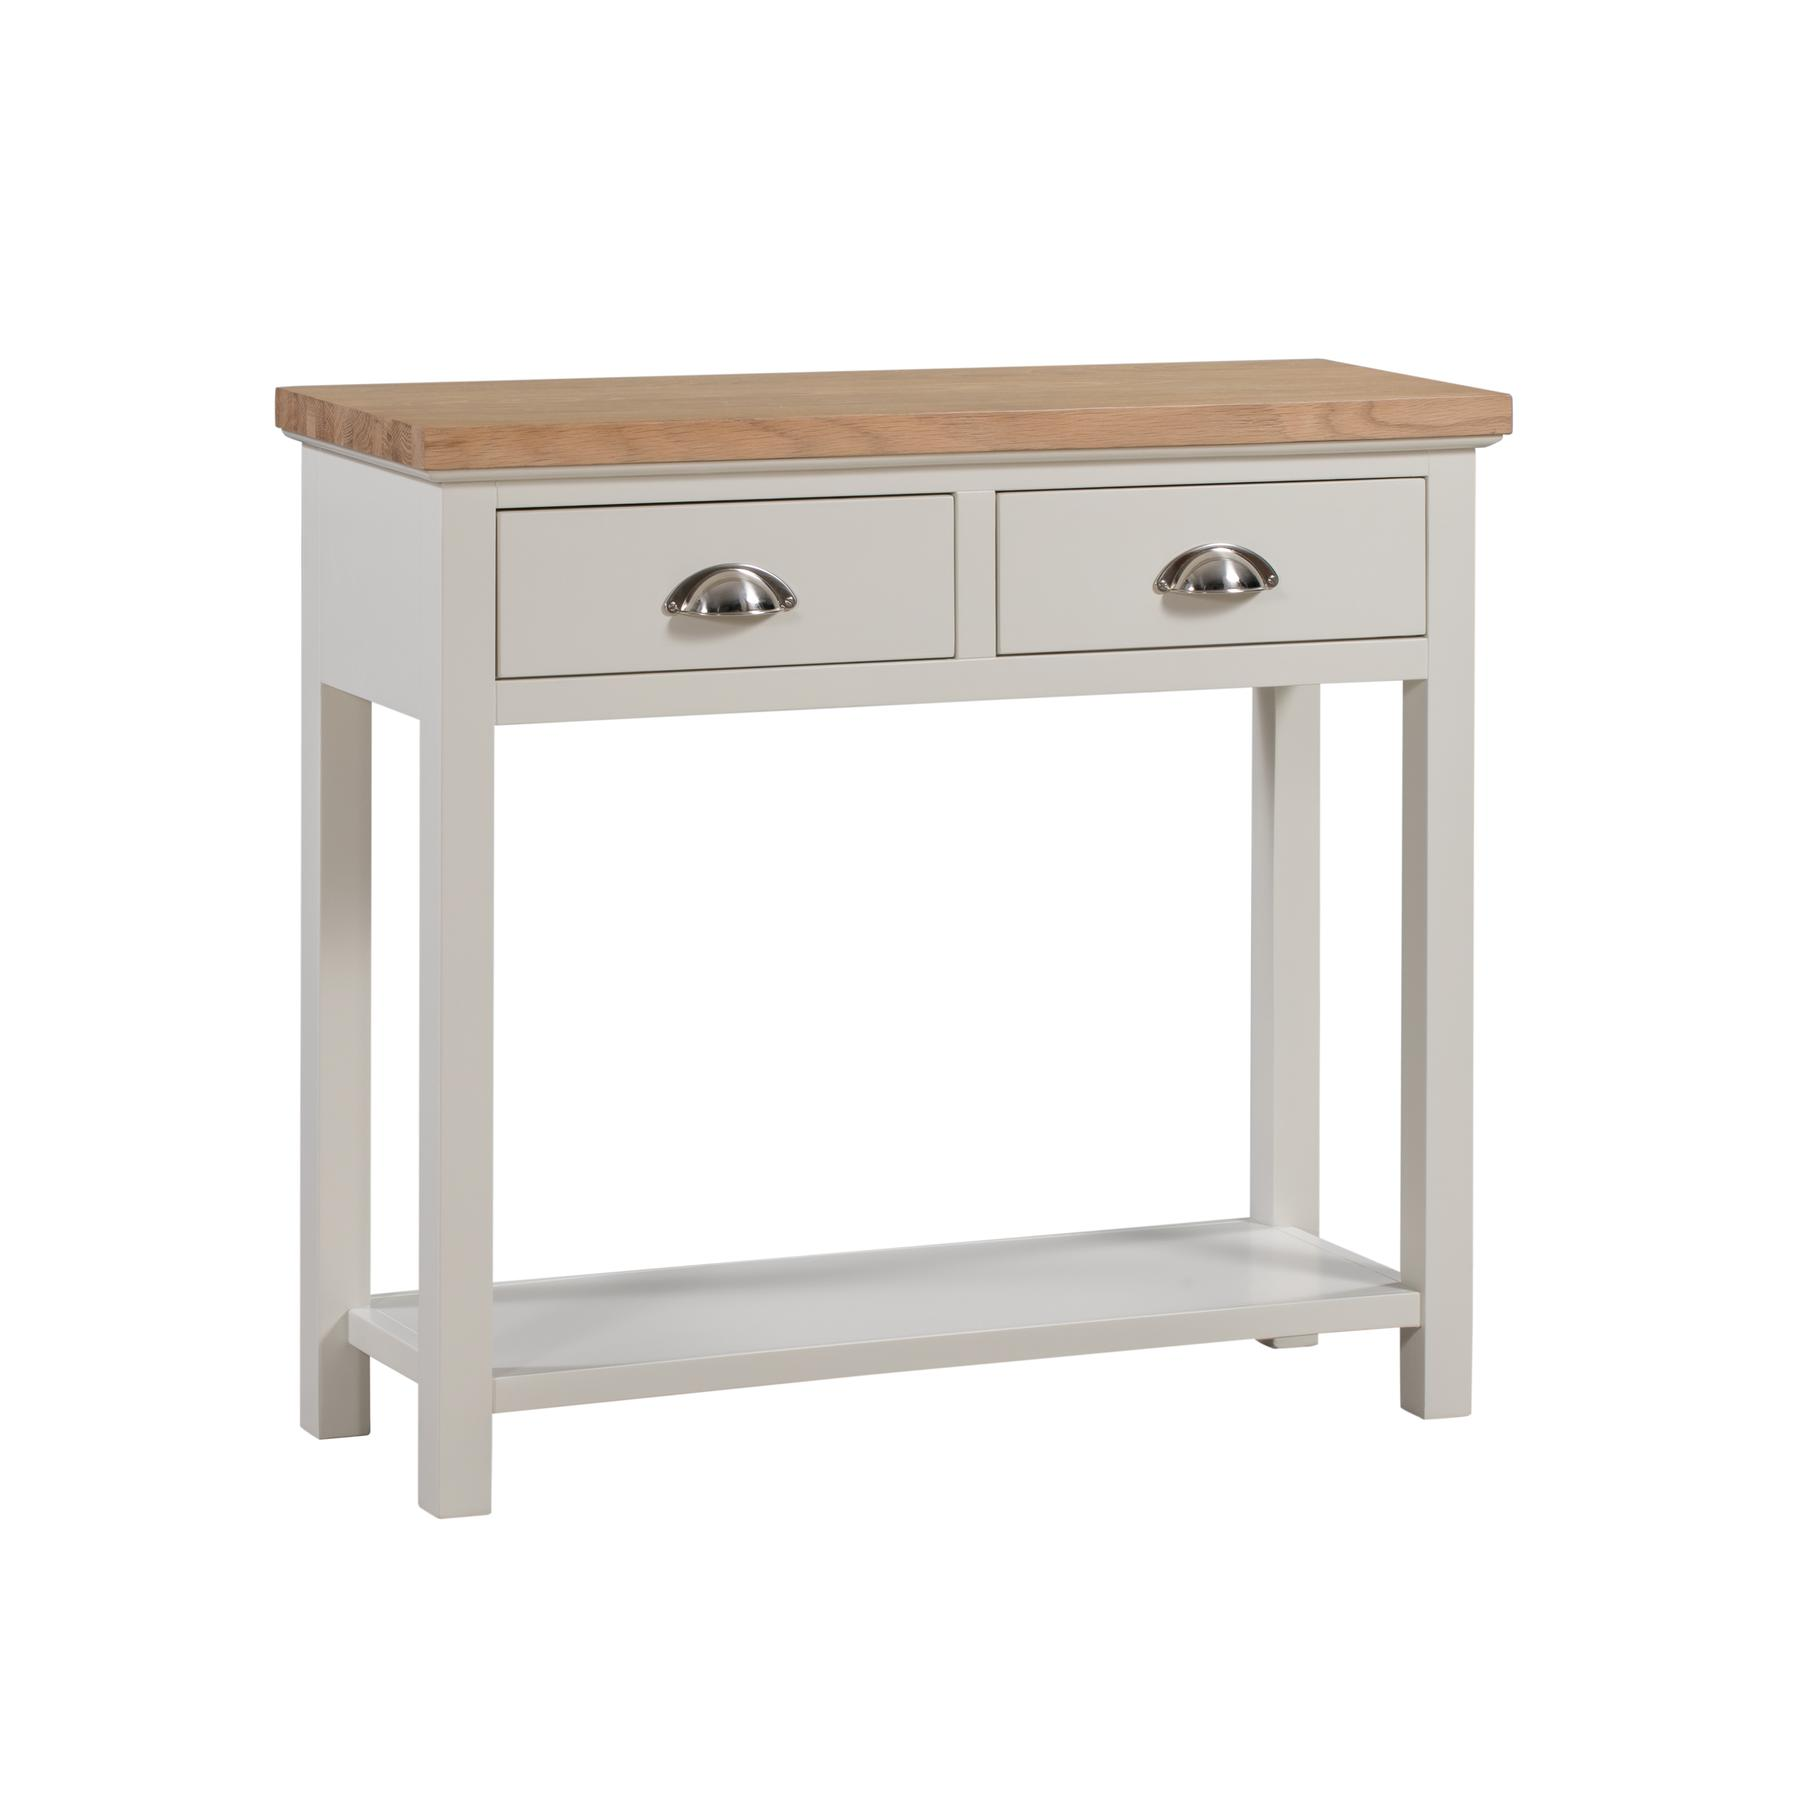 Ripley Oak Collection 2 Drawer Console Table